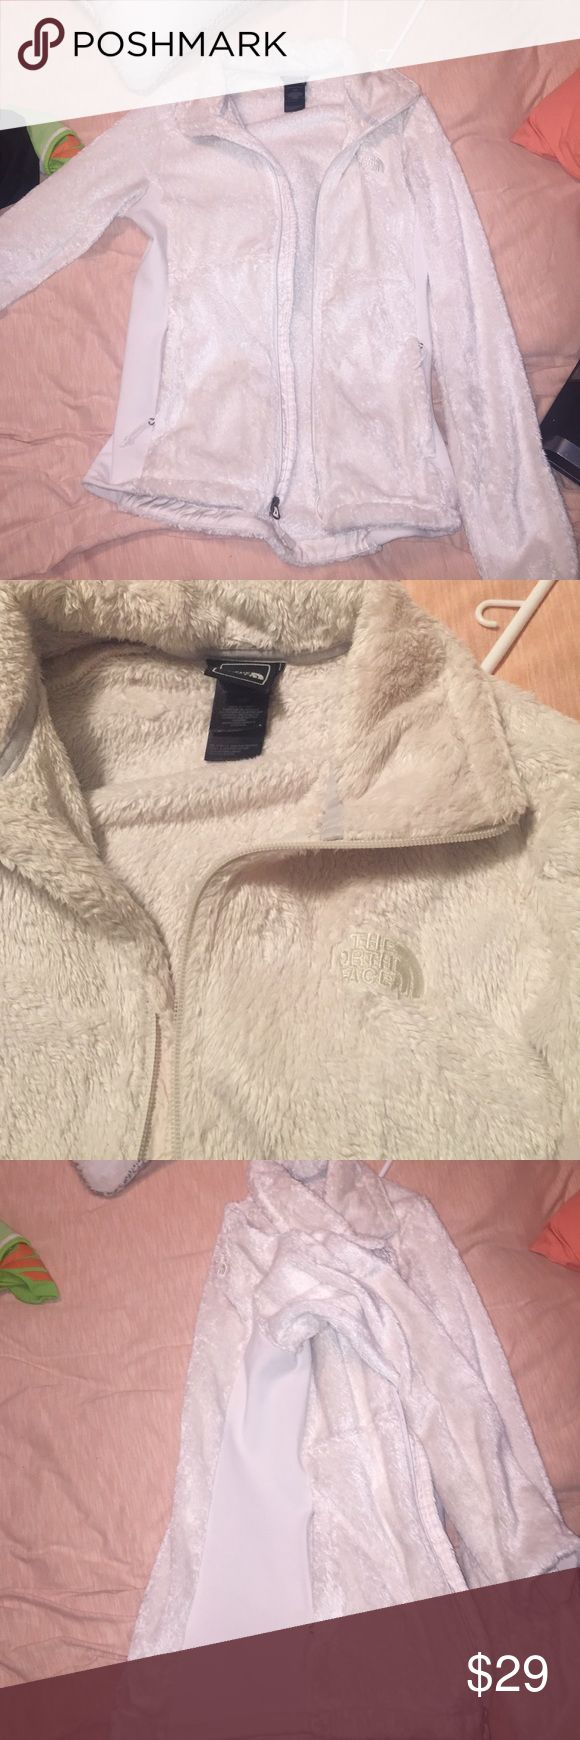 north face white fuzzy jacket! Worn some! White north face jacket no stains! Worn some but still good condition! In between white/cream North Face Jackets & Coats